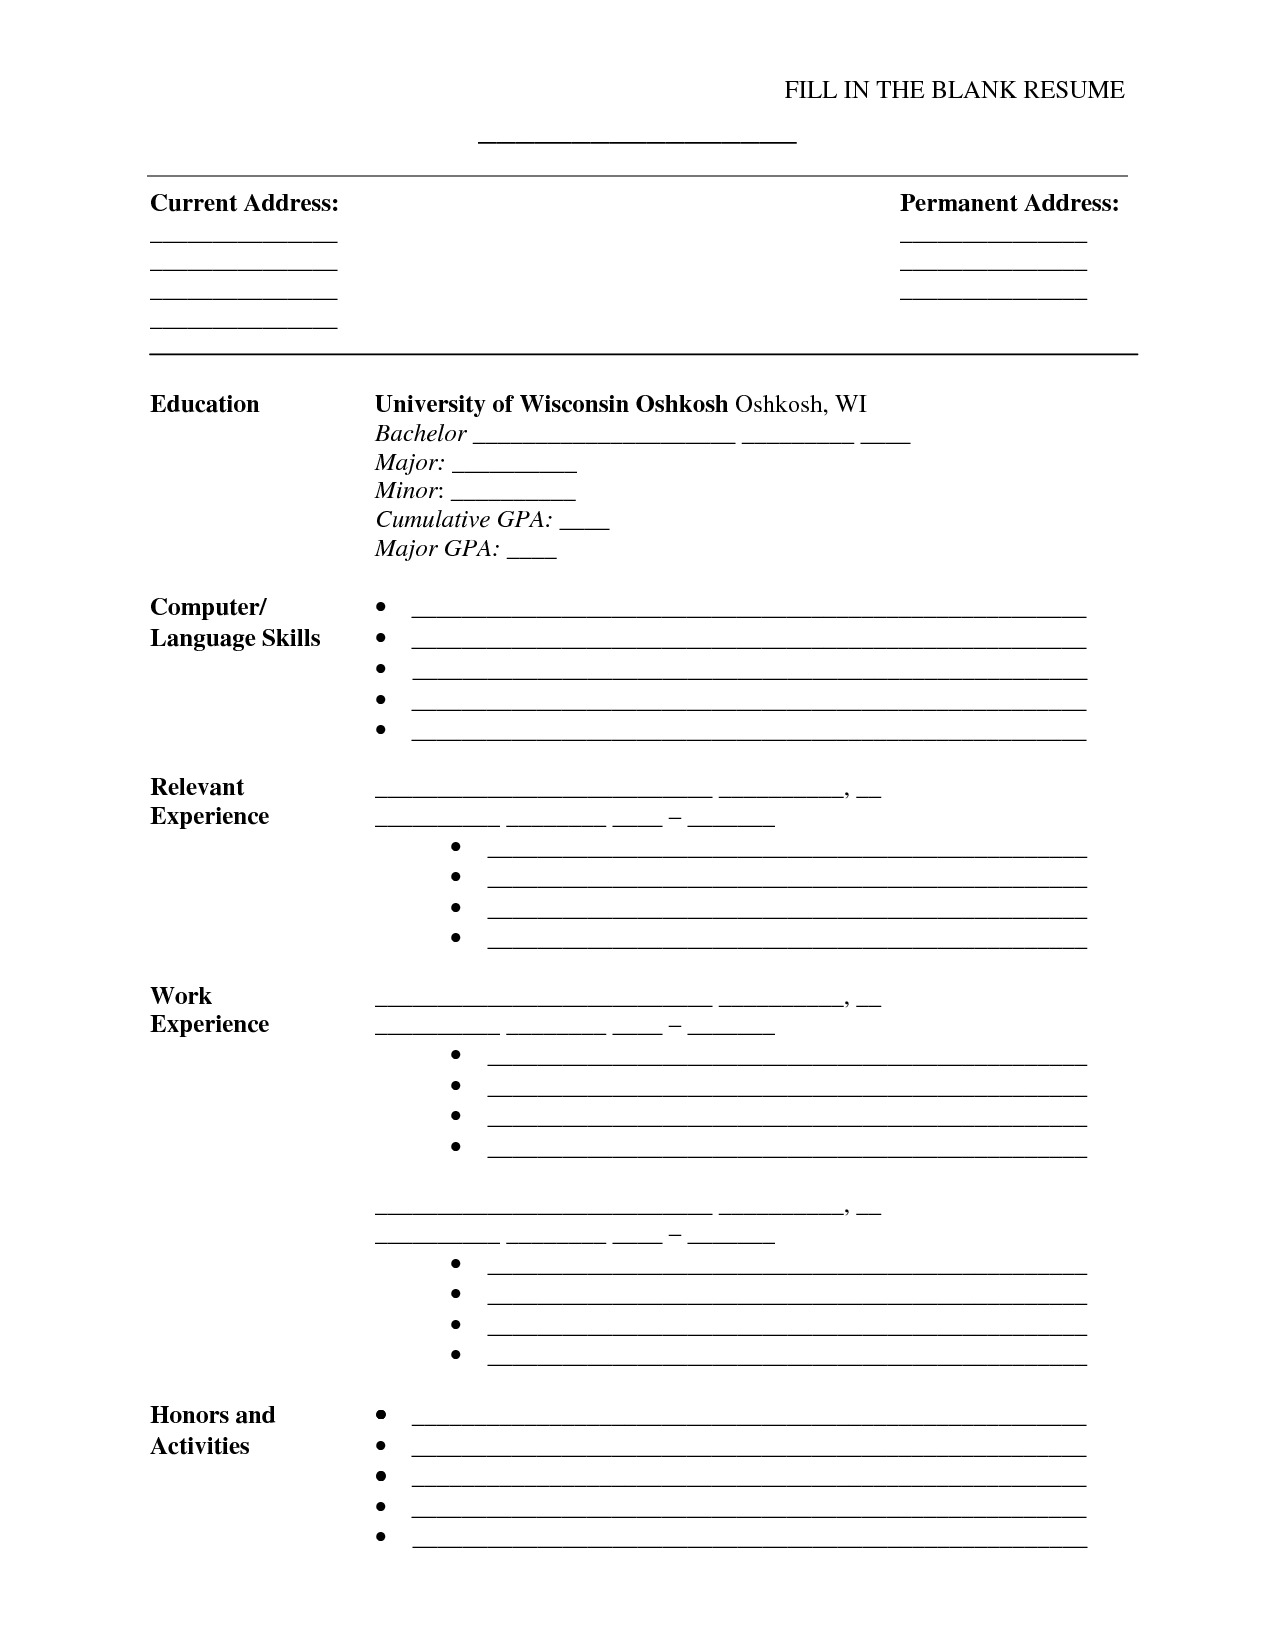 Blank Resume Templates Fill In The Blank Resume Pdf  Httpwwwresumecareerfill